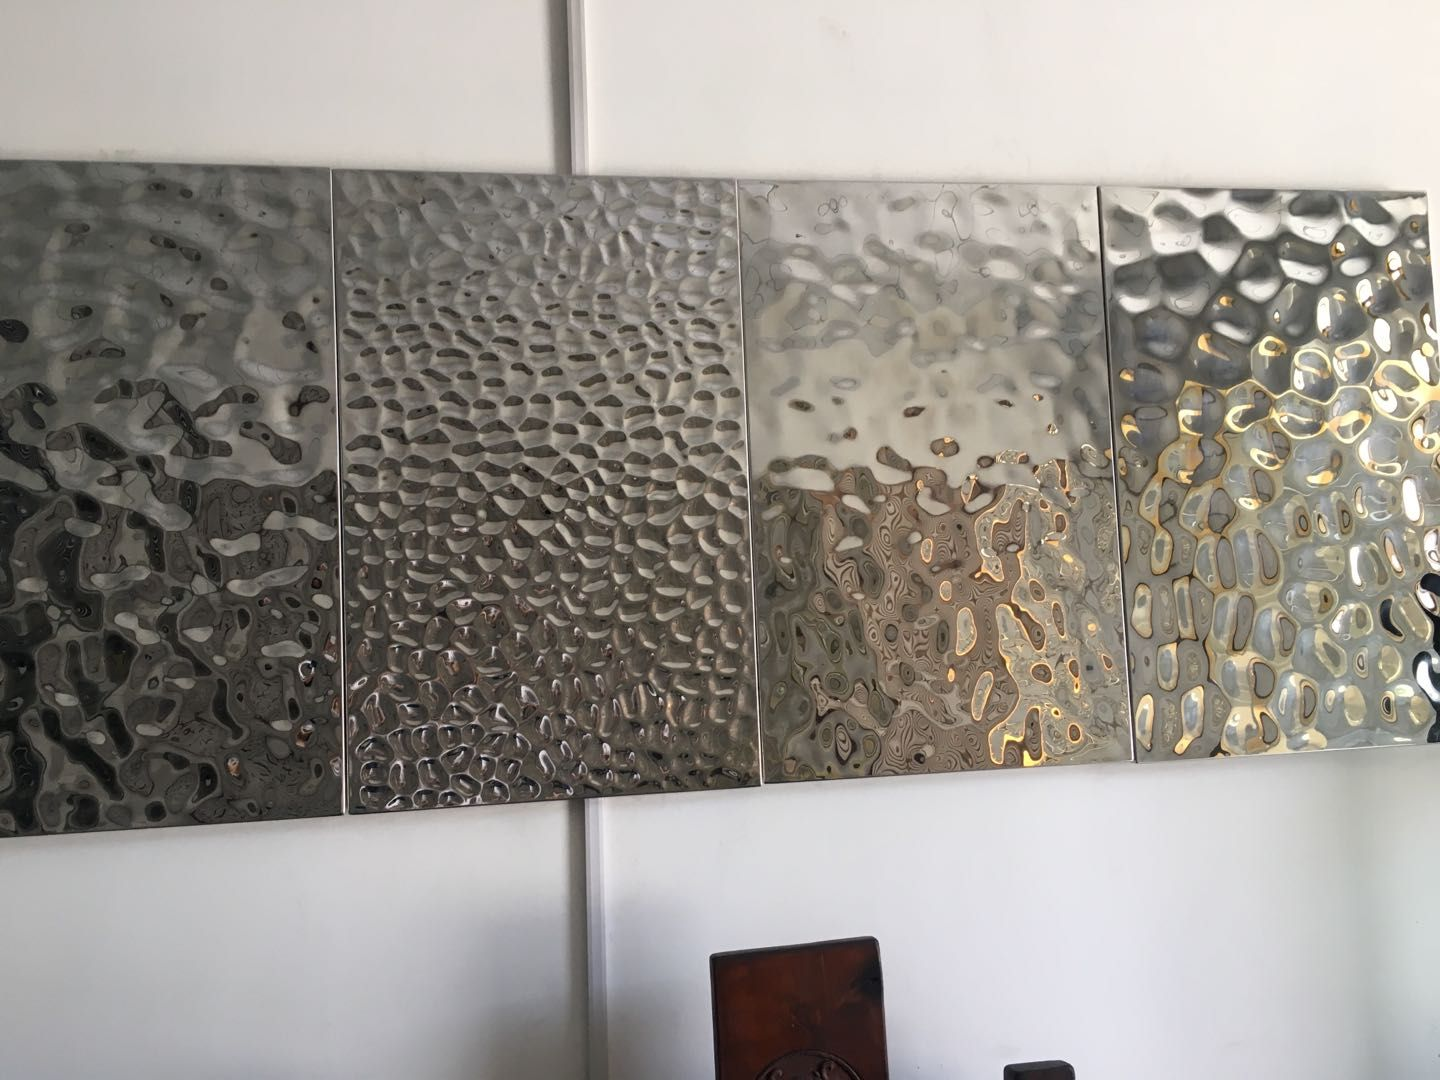 304 Stainless Steel Water Ripple Sheets Shanghai Yikai Metal Products Co Ltd Stainless Steel Art Water Ripples Stainless Steel Sheet